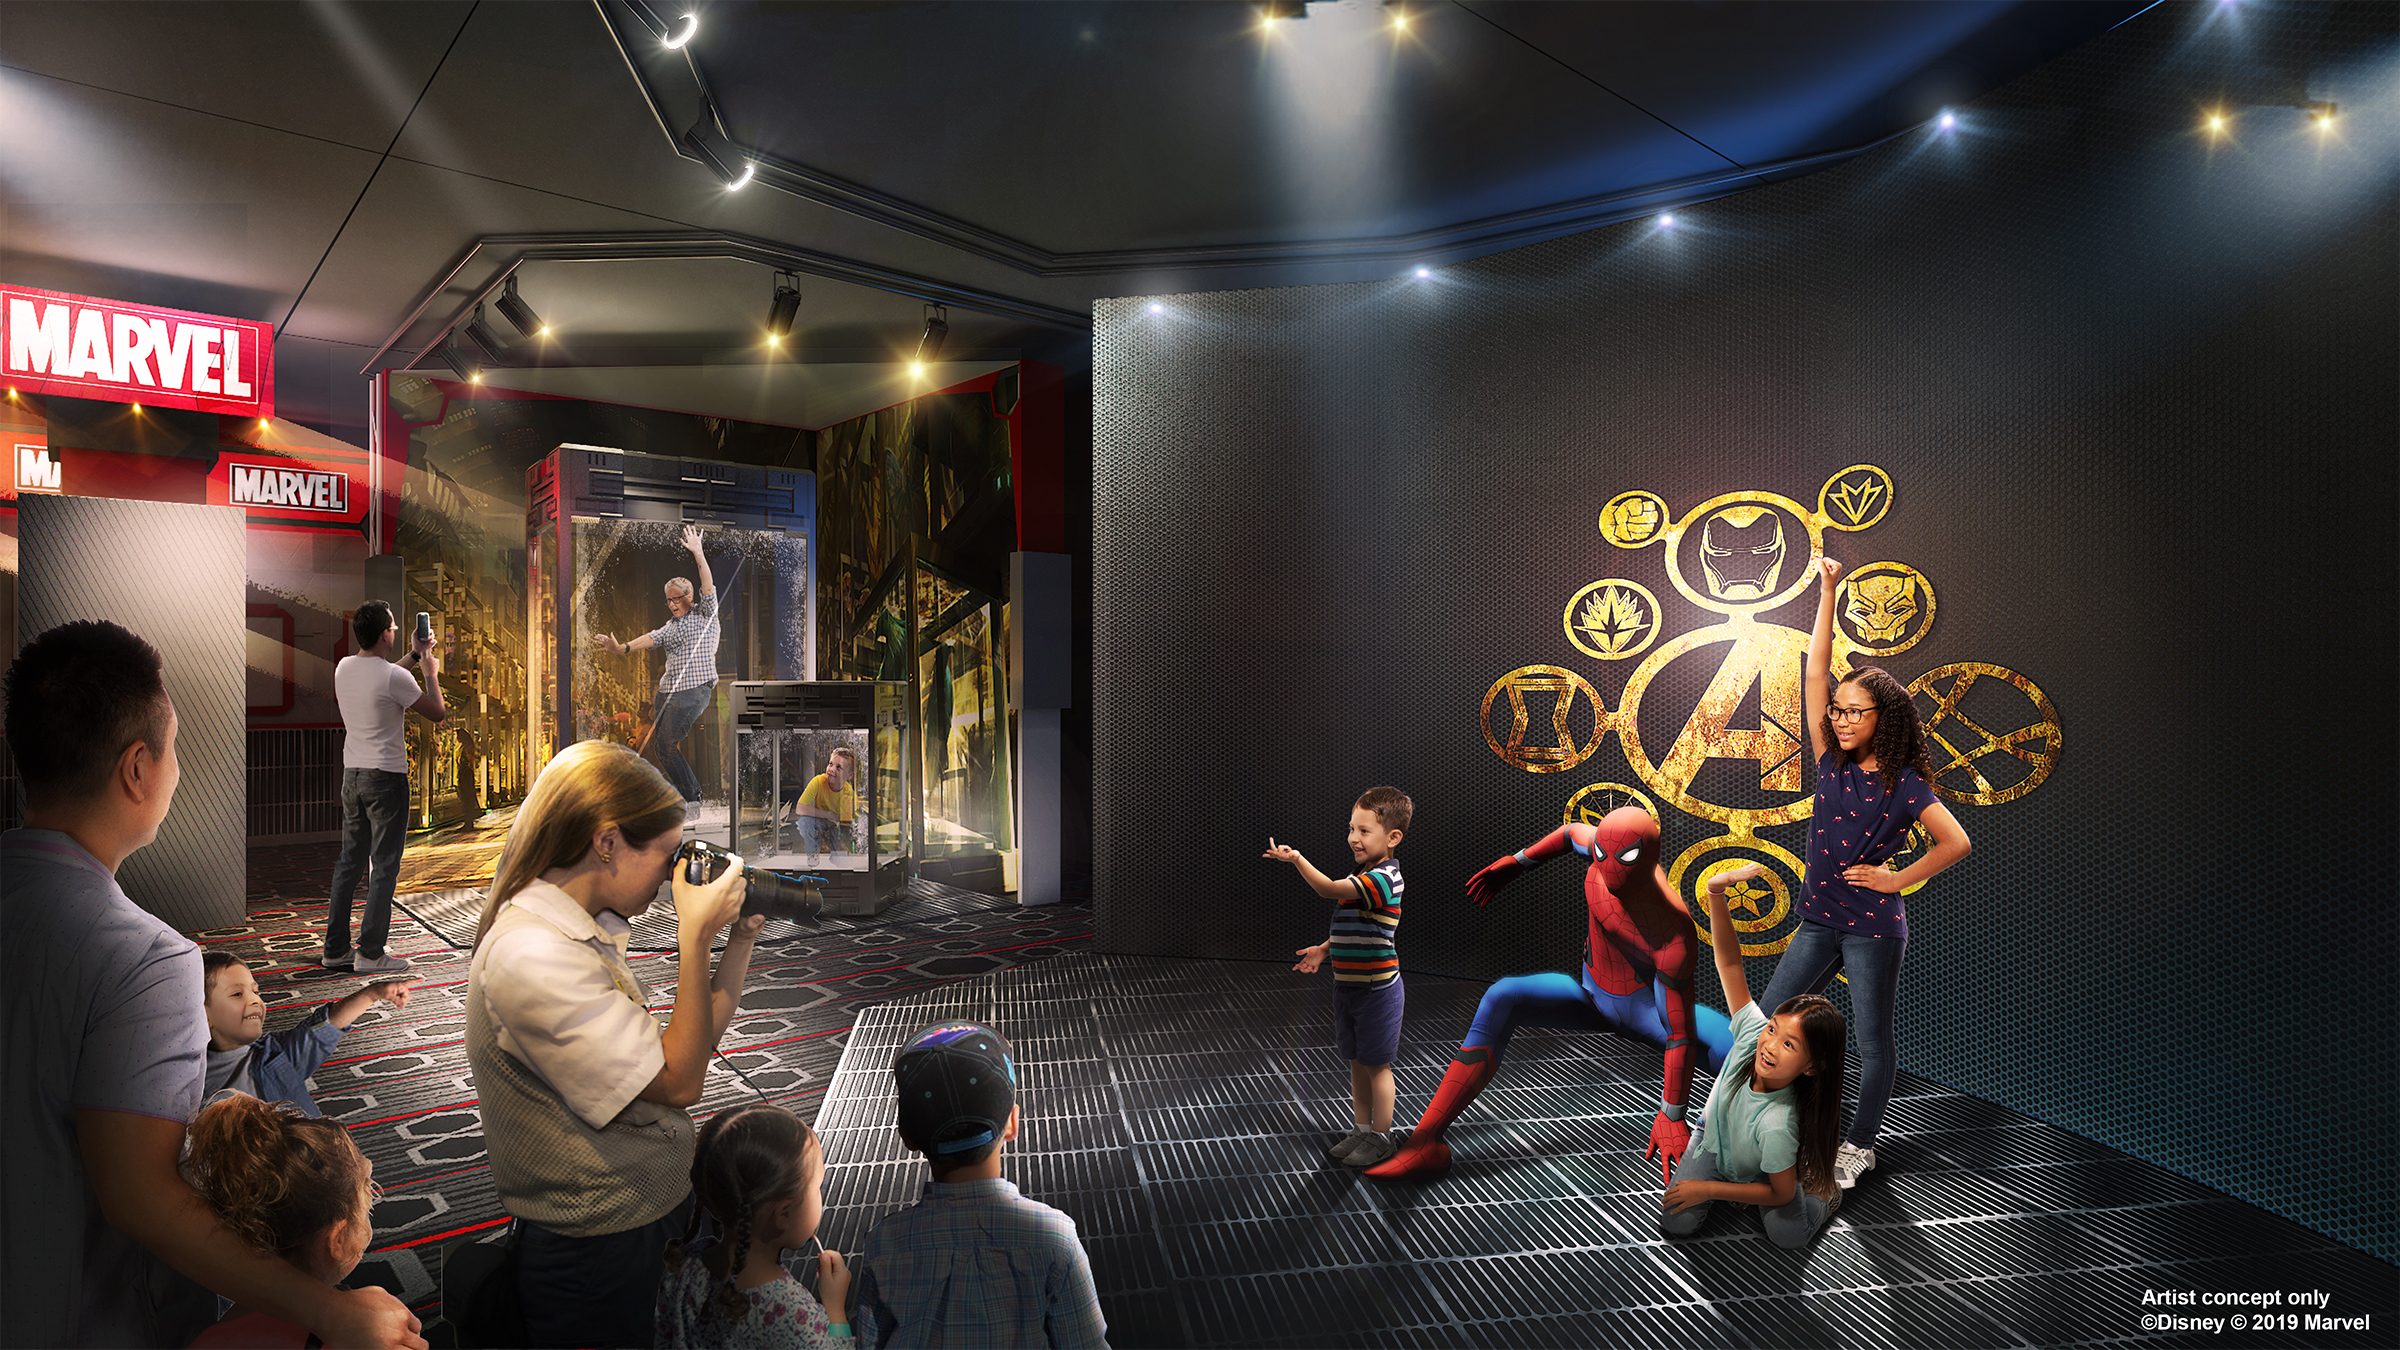 An artist's impression of Super Hero Station at Disney's Hotel New York: The Art Of Marvel (Disney/Marvel/PA)